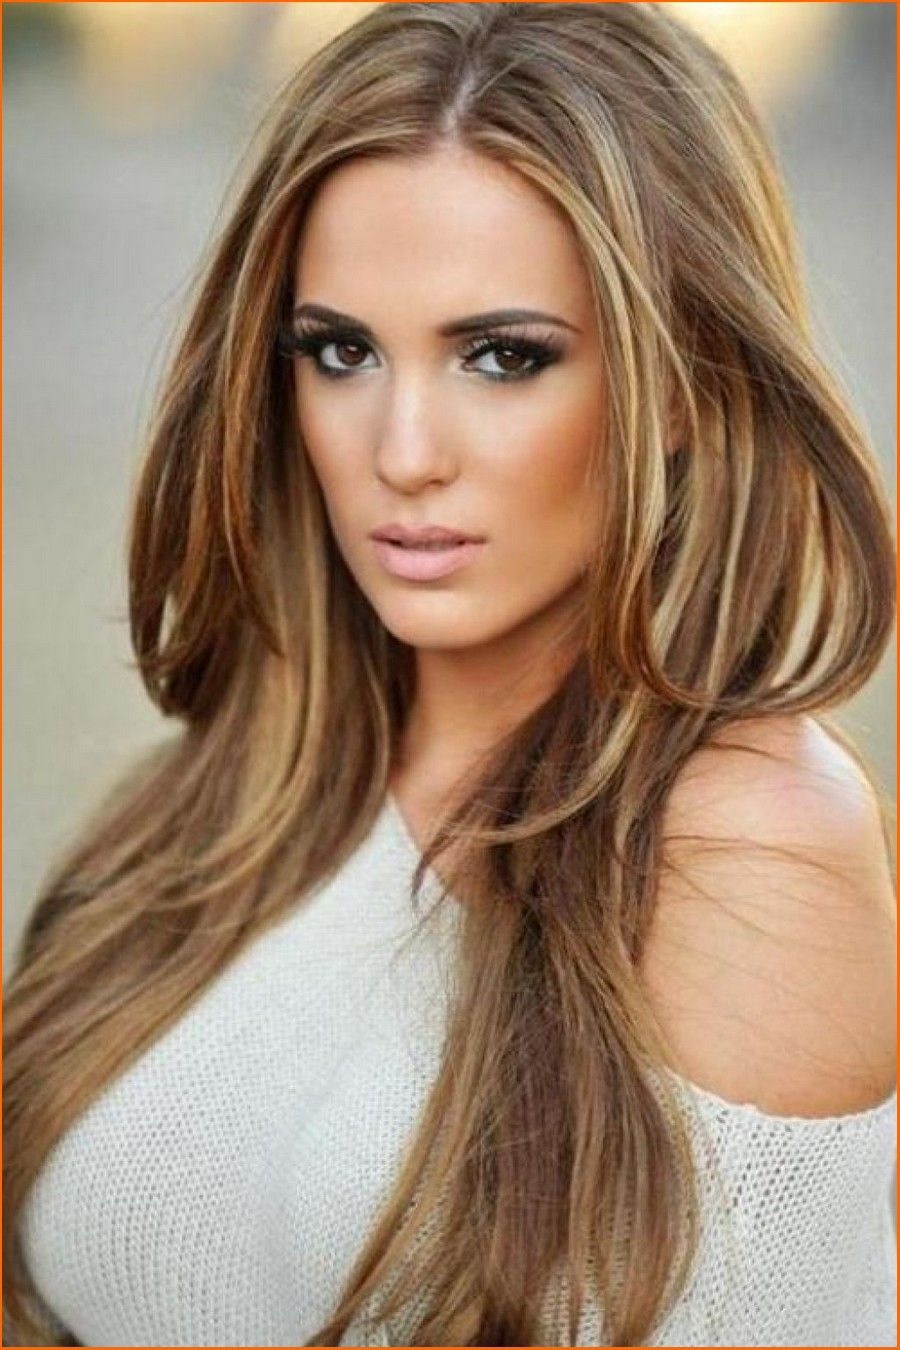 Hair Highlights Idea For Hazel Eyes With Different Skin Tone Hairhighlights Hairhighlightside Pale Skin Hair Color Hair Color For Brown Eyes Cool Hairstyles